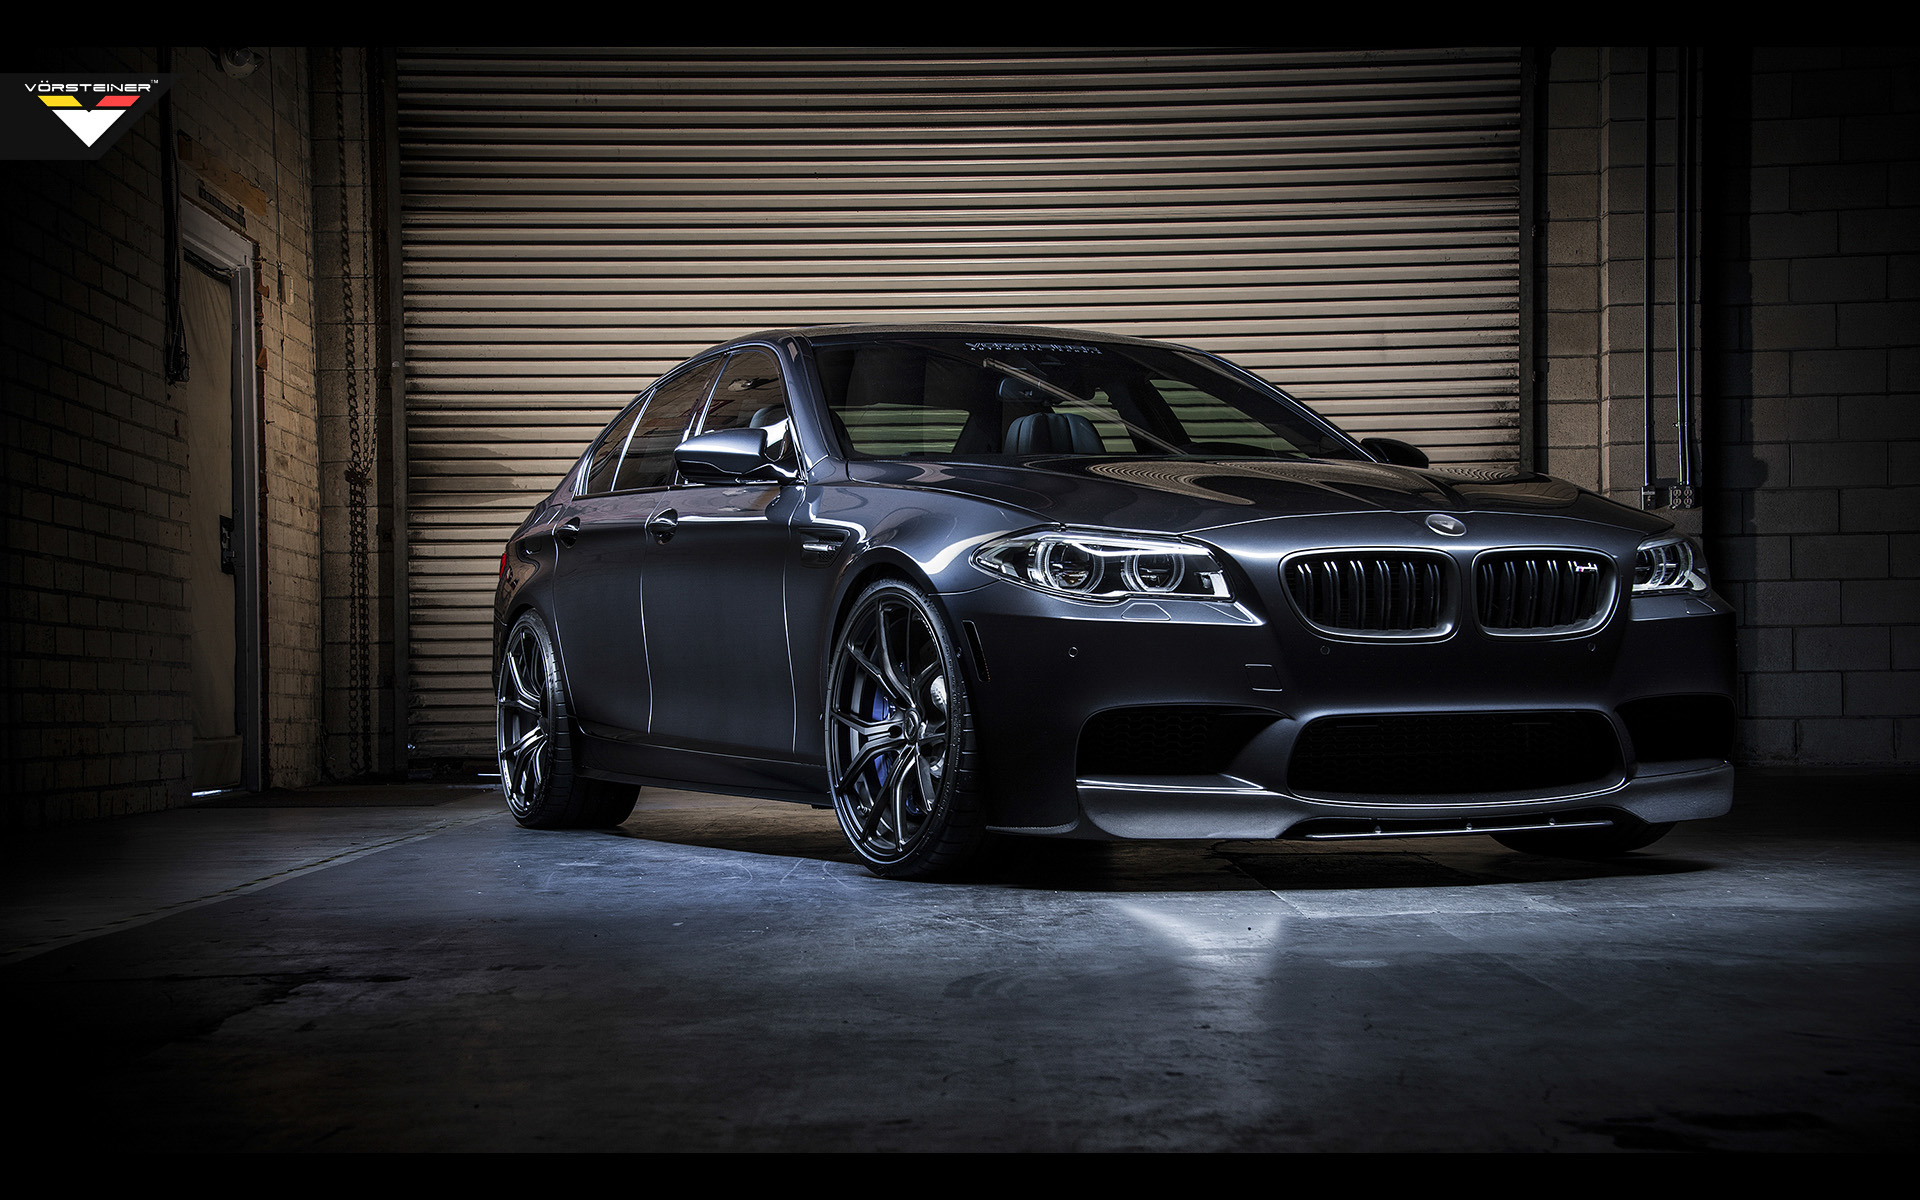 Bmw M5 Wallpaper, Adorable HDQ Backgrounds of Bmw M5, 34 Bmw M5